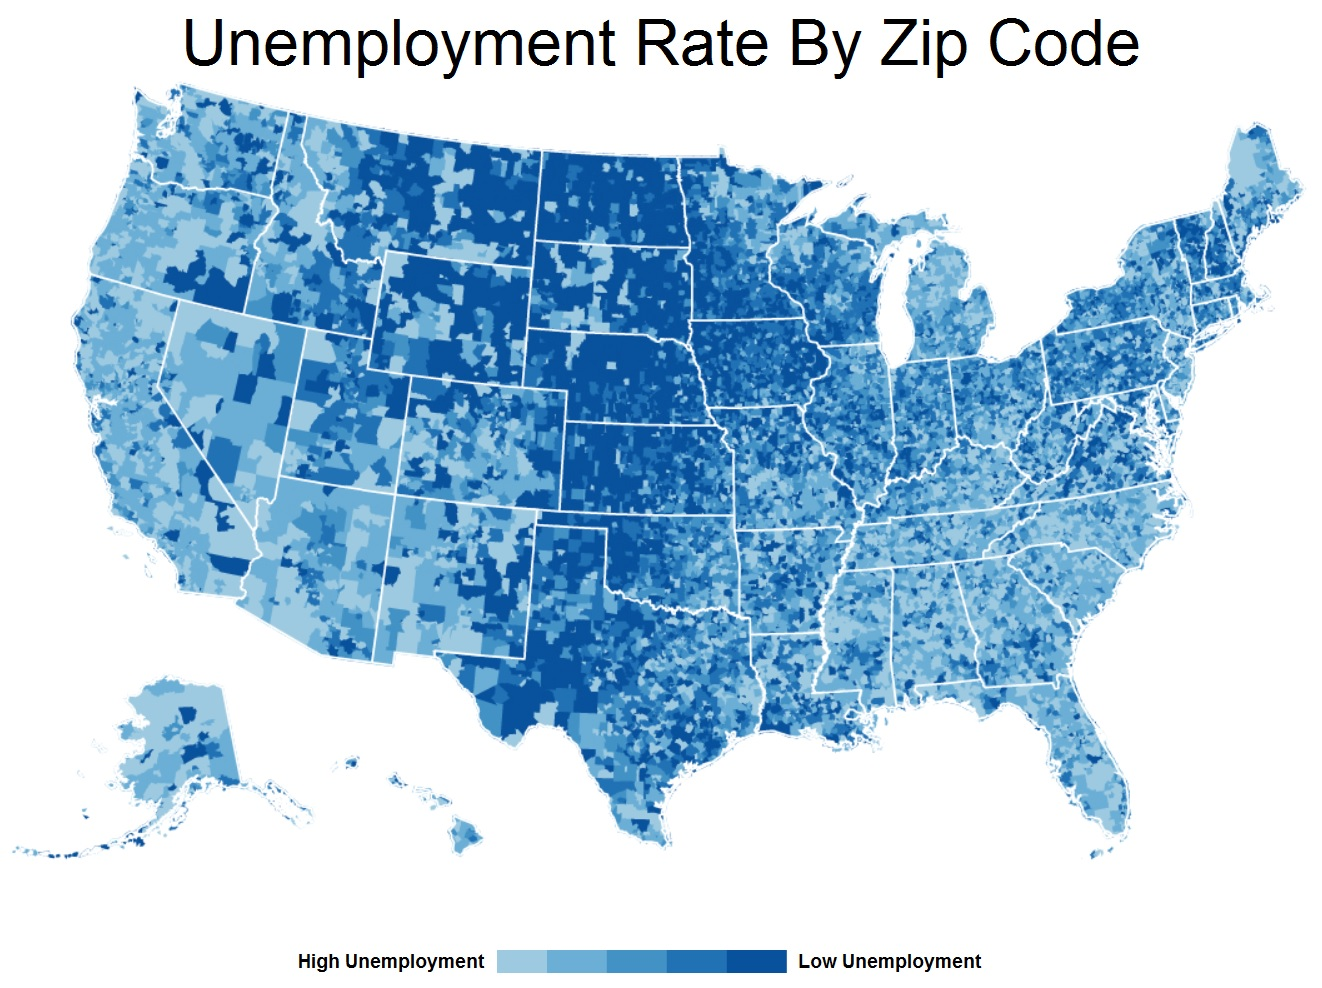 Unemployment Rate By Zip Code